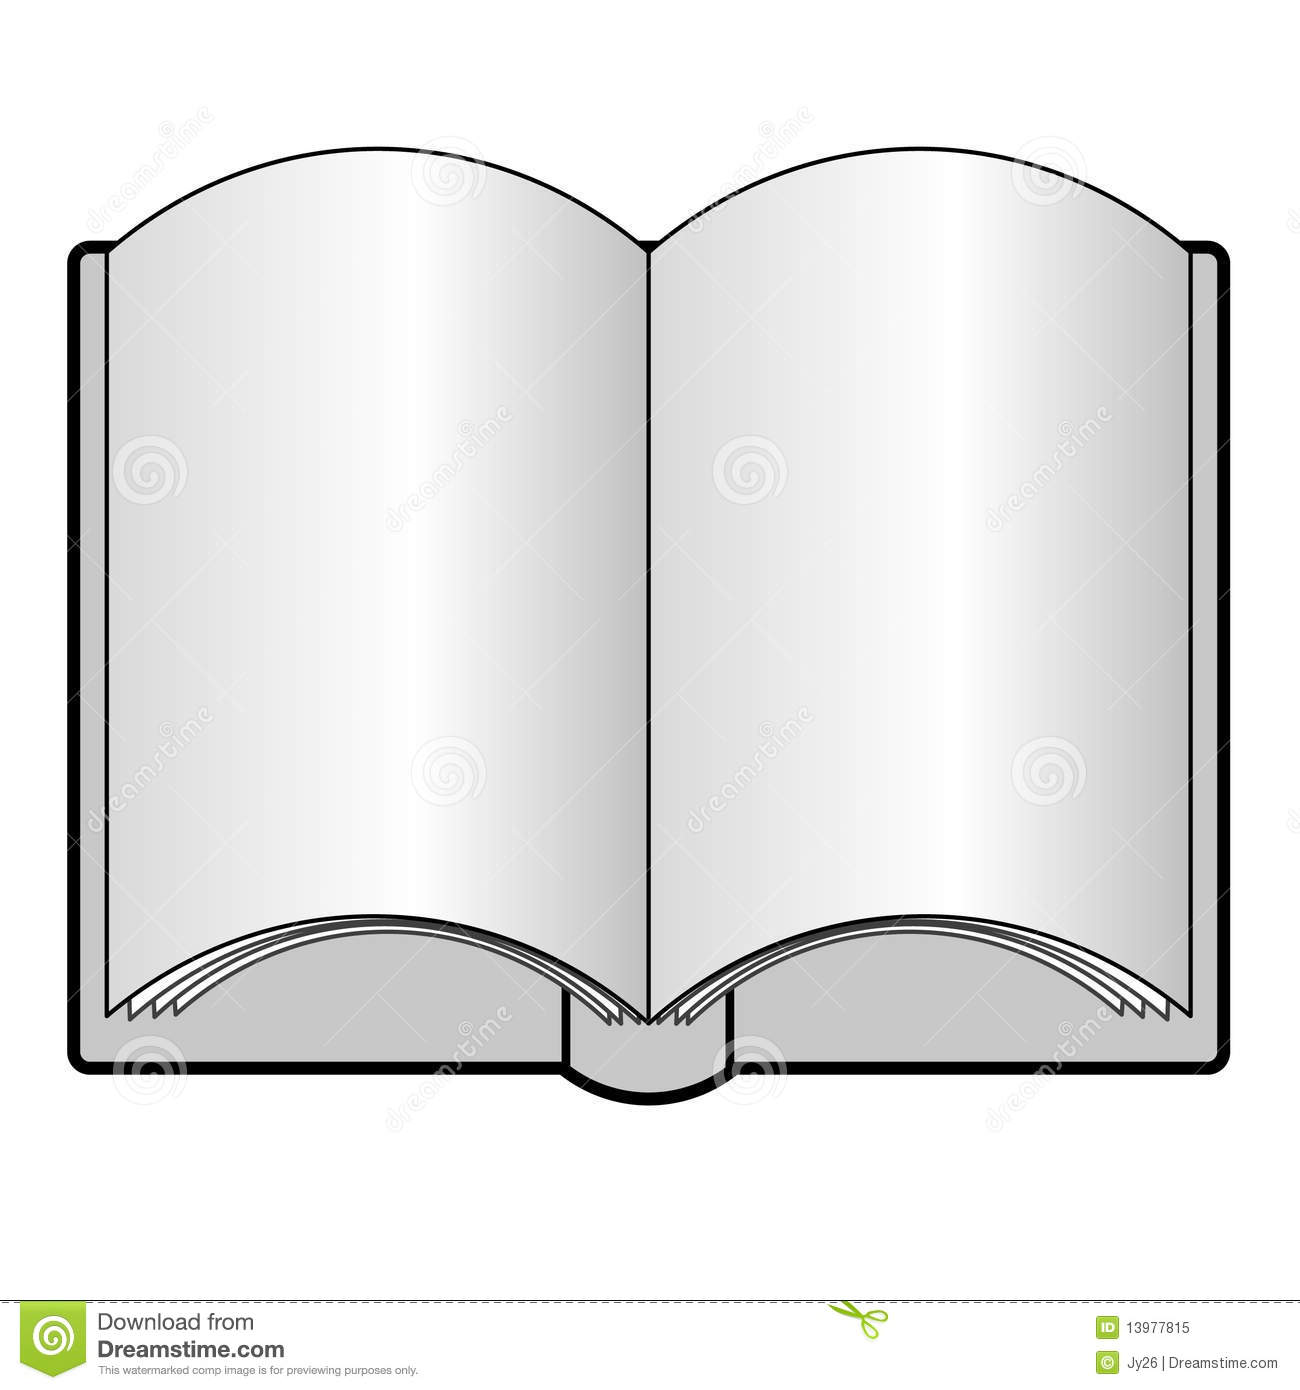 clipart open book blank pages - photo #40